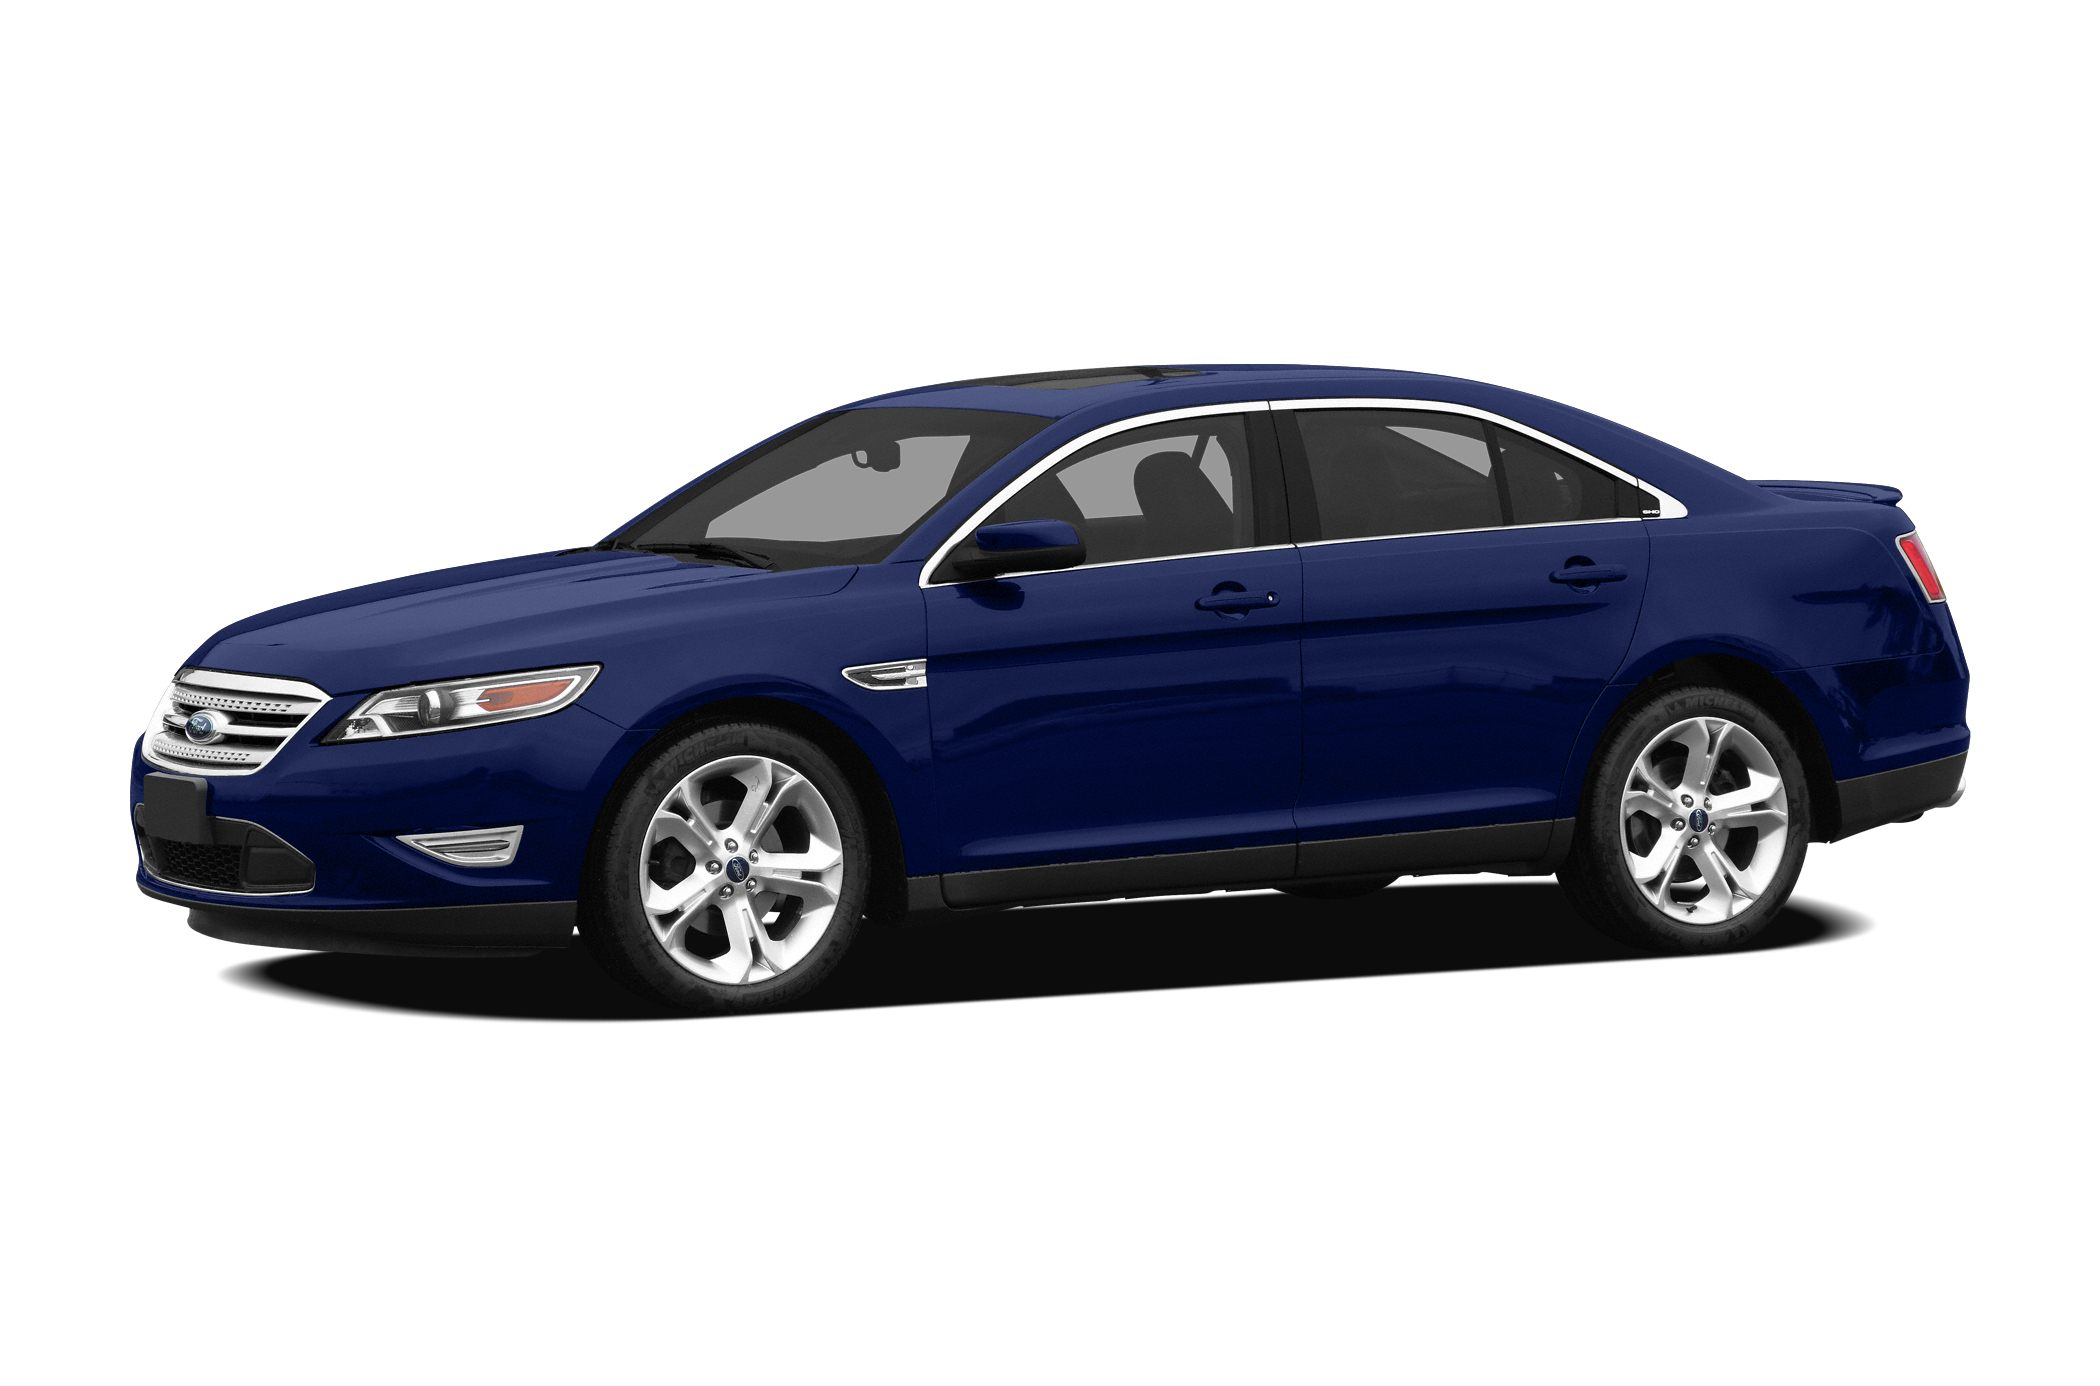 2011 Ford Taurus SHO Sedan for sale in Tucson for $22,995 with 56,182 miles